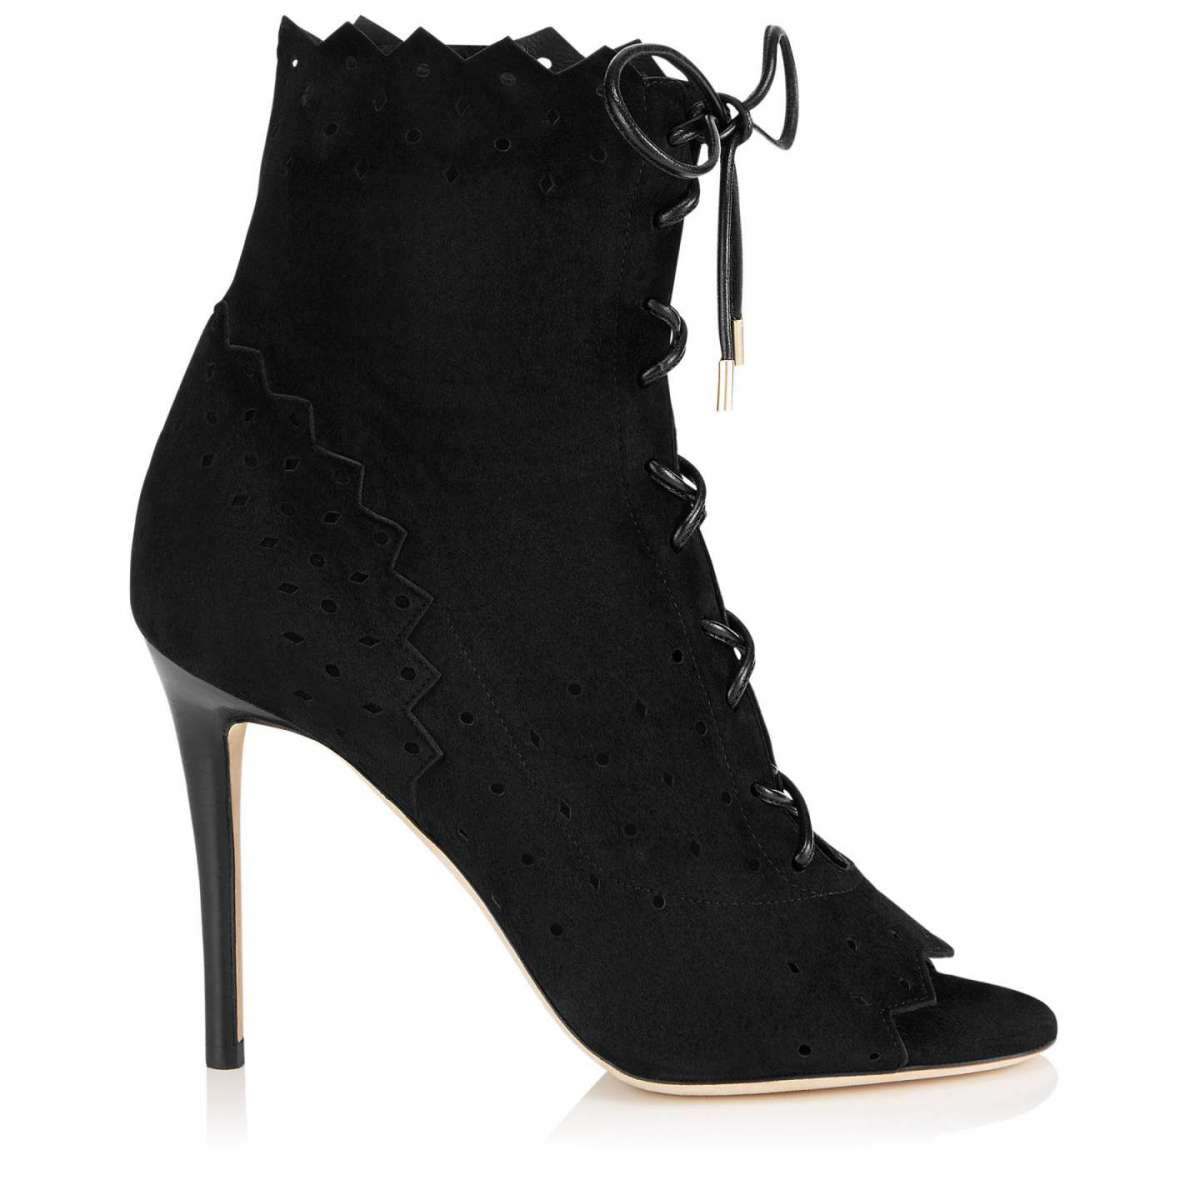 Ankle boot lace up Jimmy Choo neri